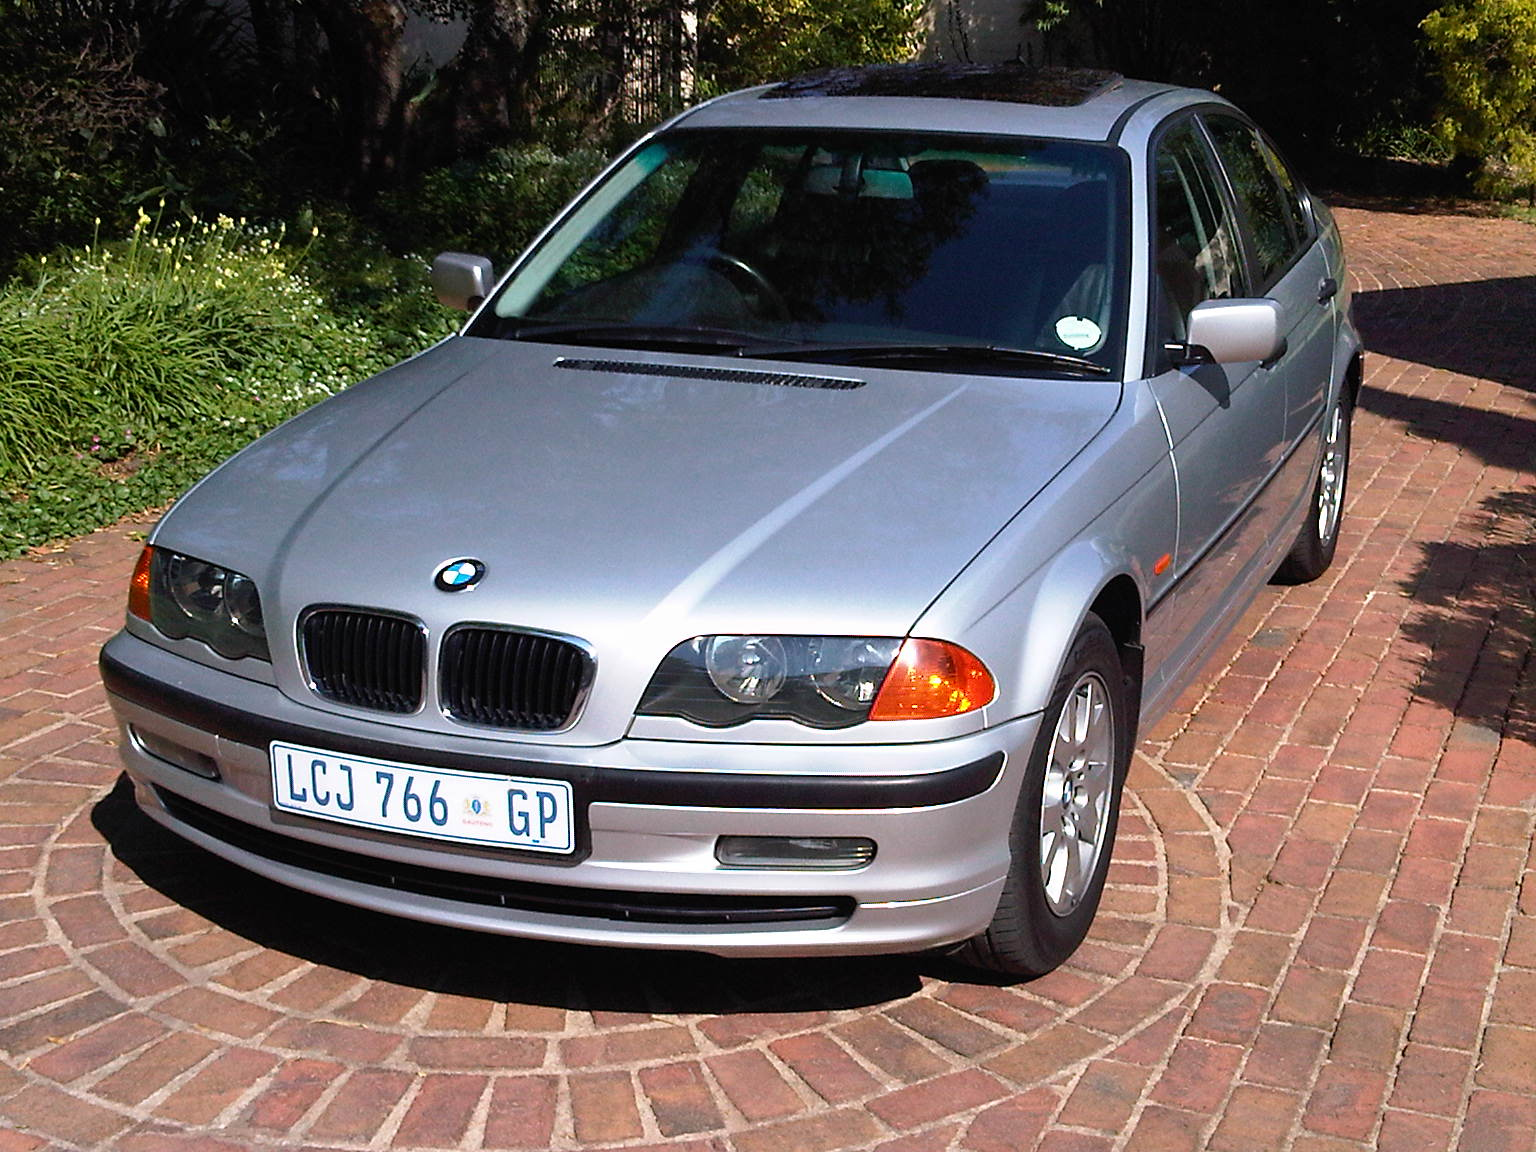 Coupe Series bmw 2000 3 series BMW 3 series 320i 2000 Technical specifications | Interior and ...